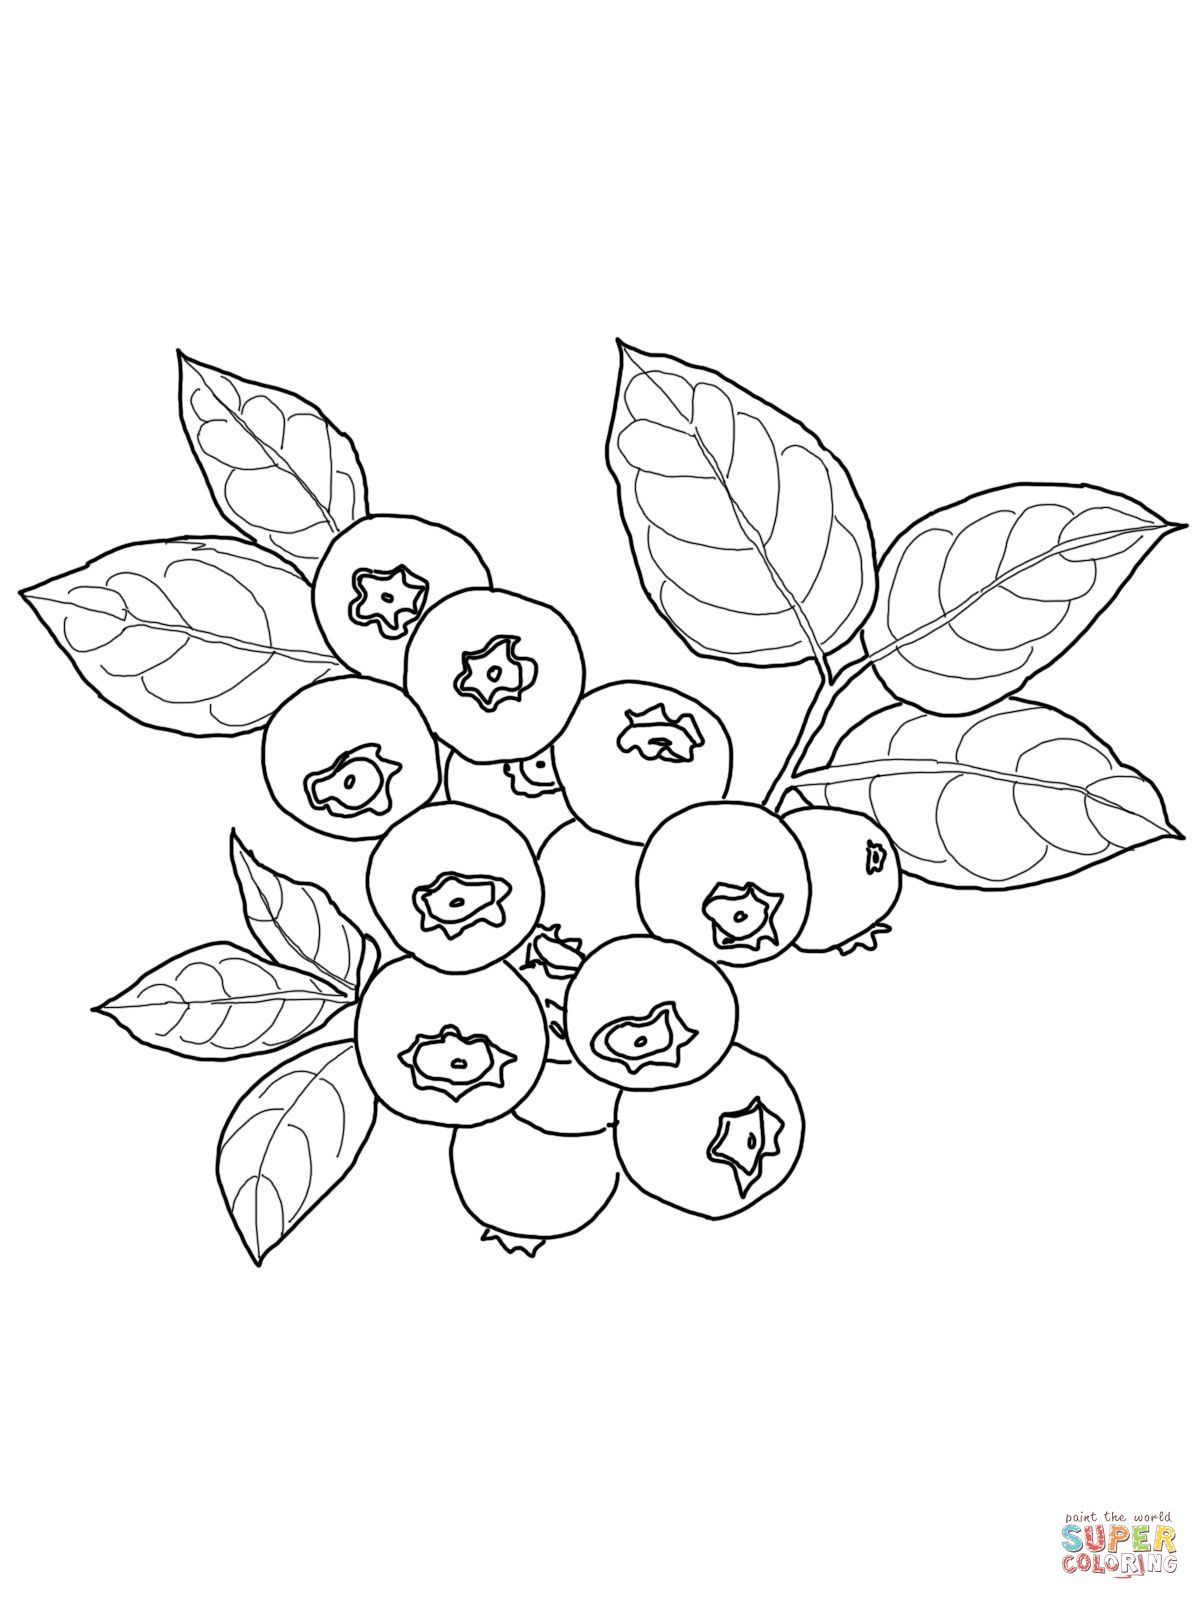 Blueberry coloring page supercoloring. Blueberries clipart outline